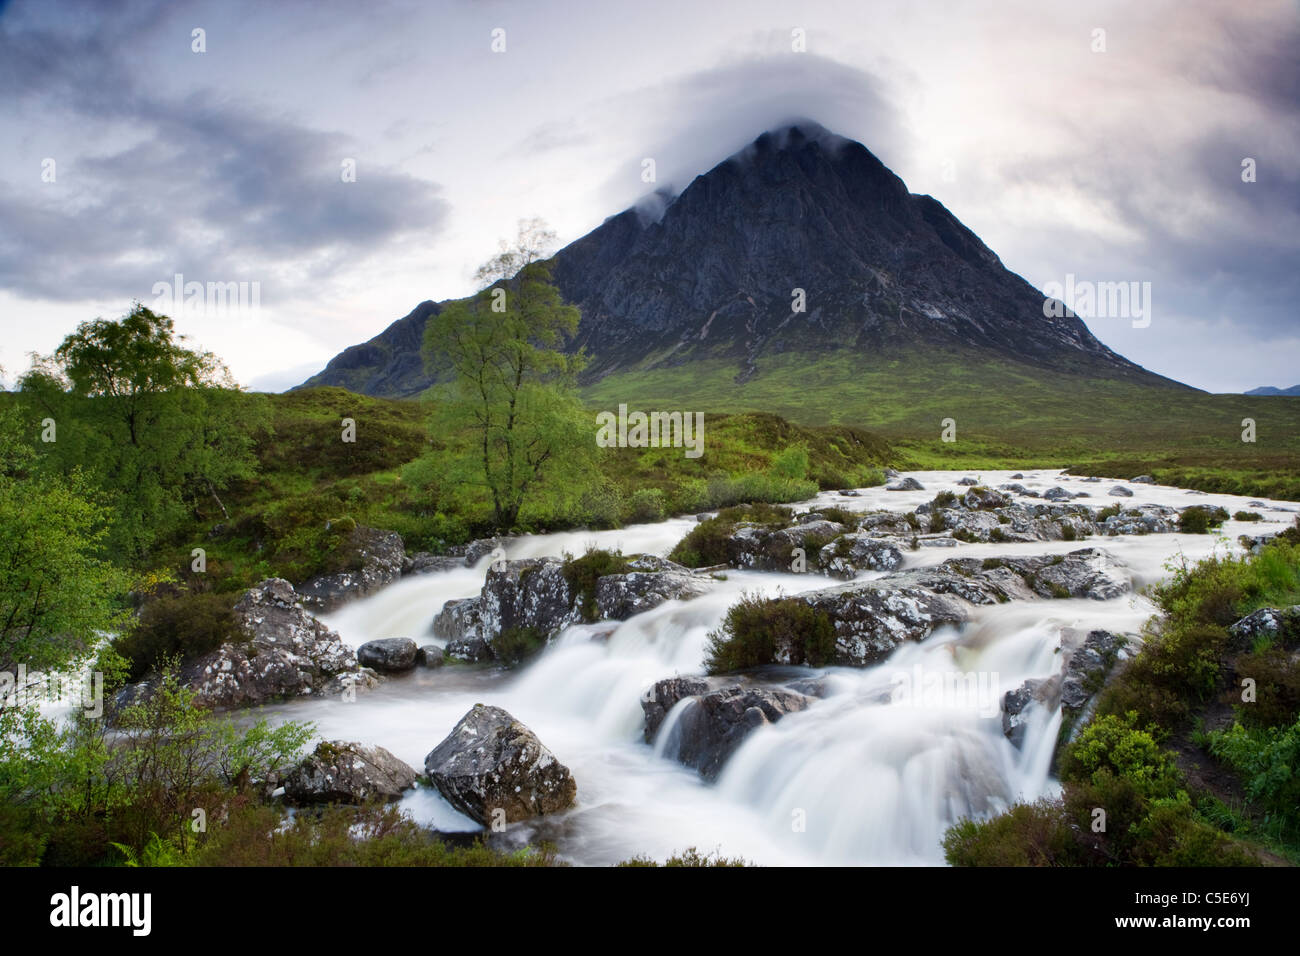 Buachaille Etive Mor and River Coupall, Highland, Scotland, UK. - Stock Image